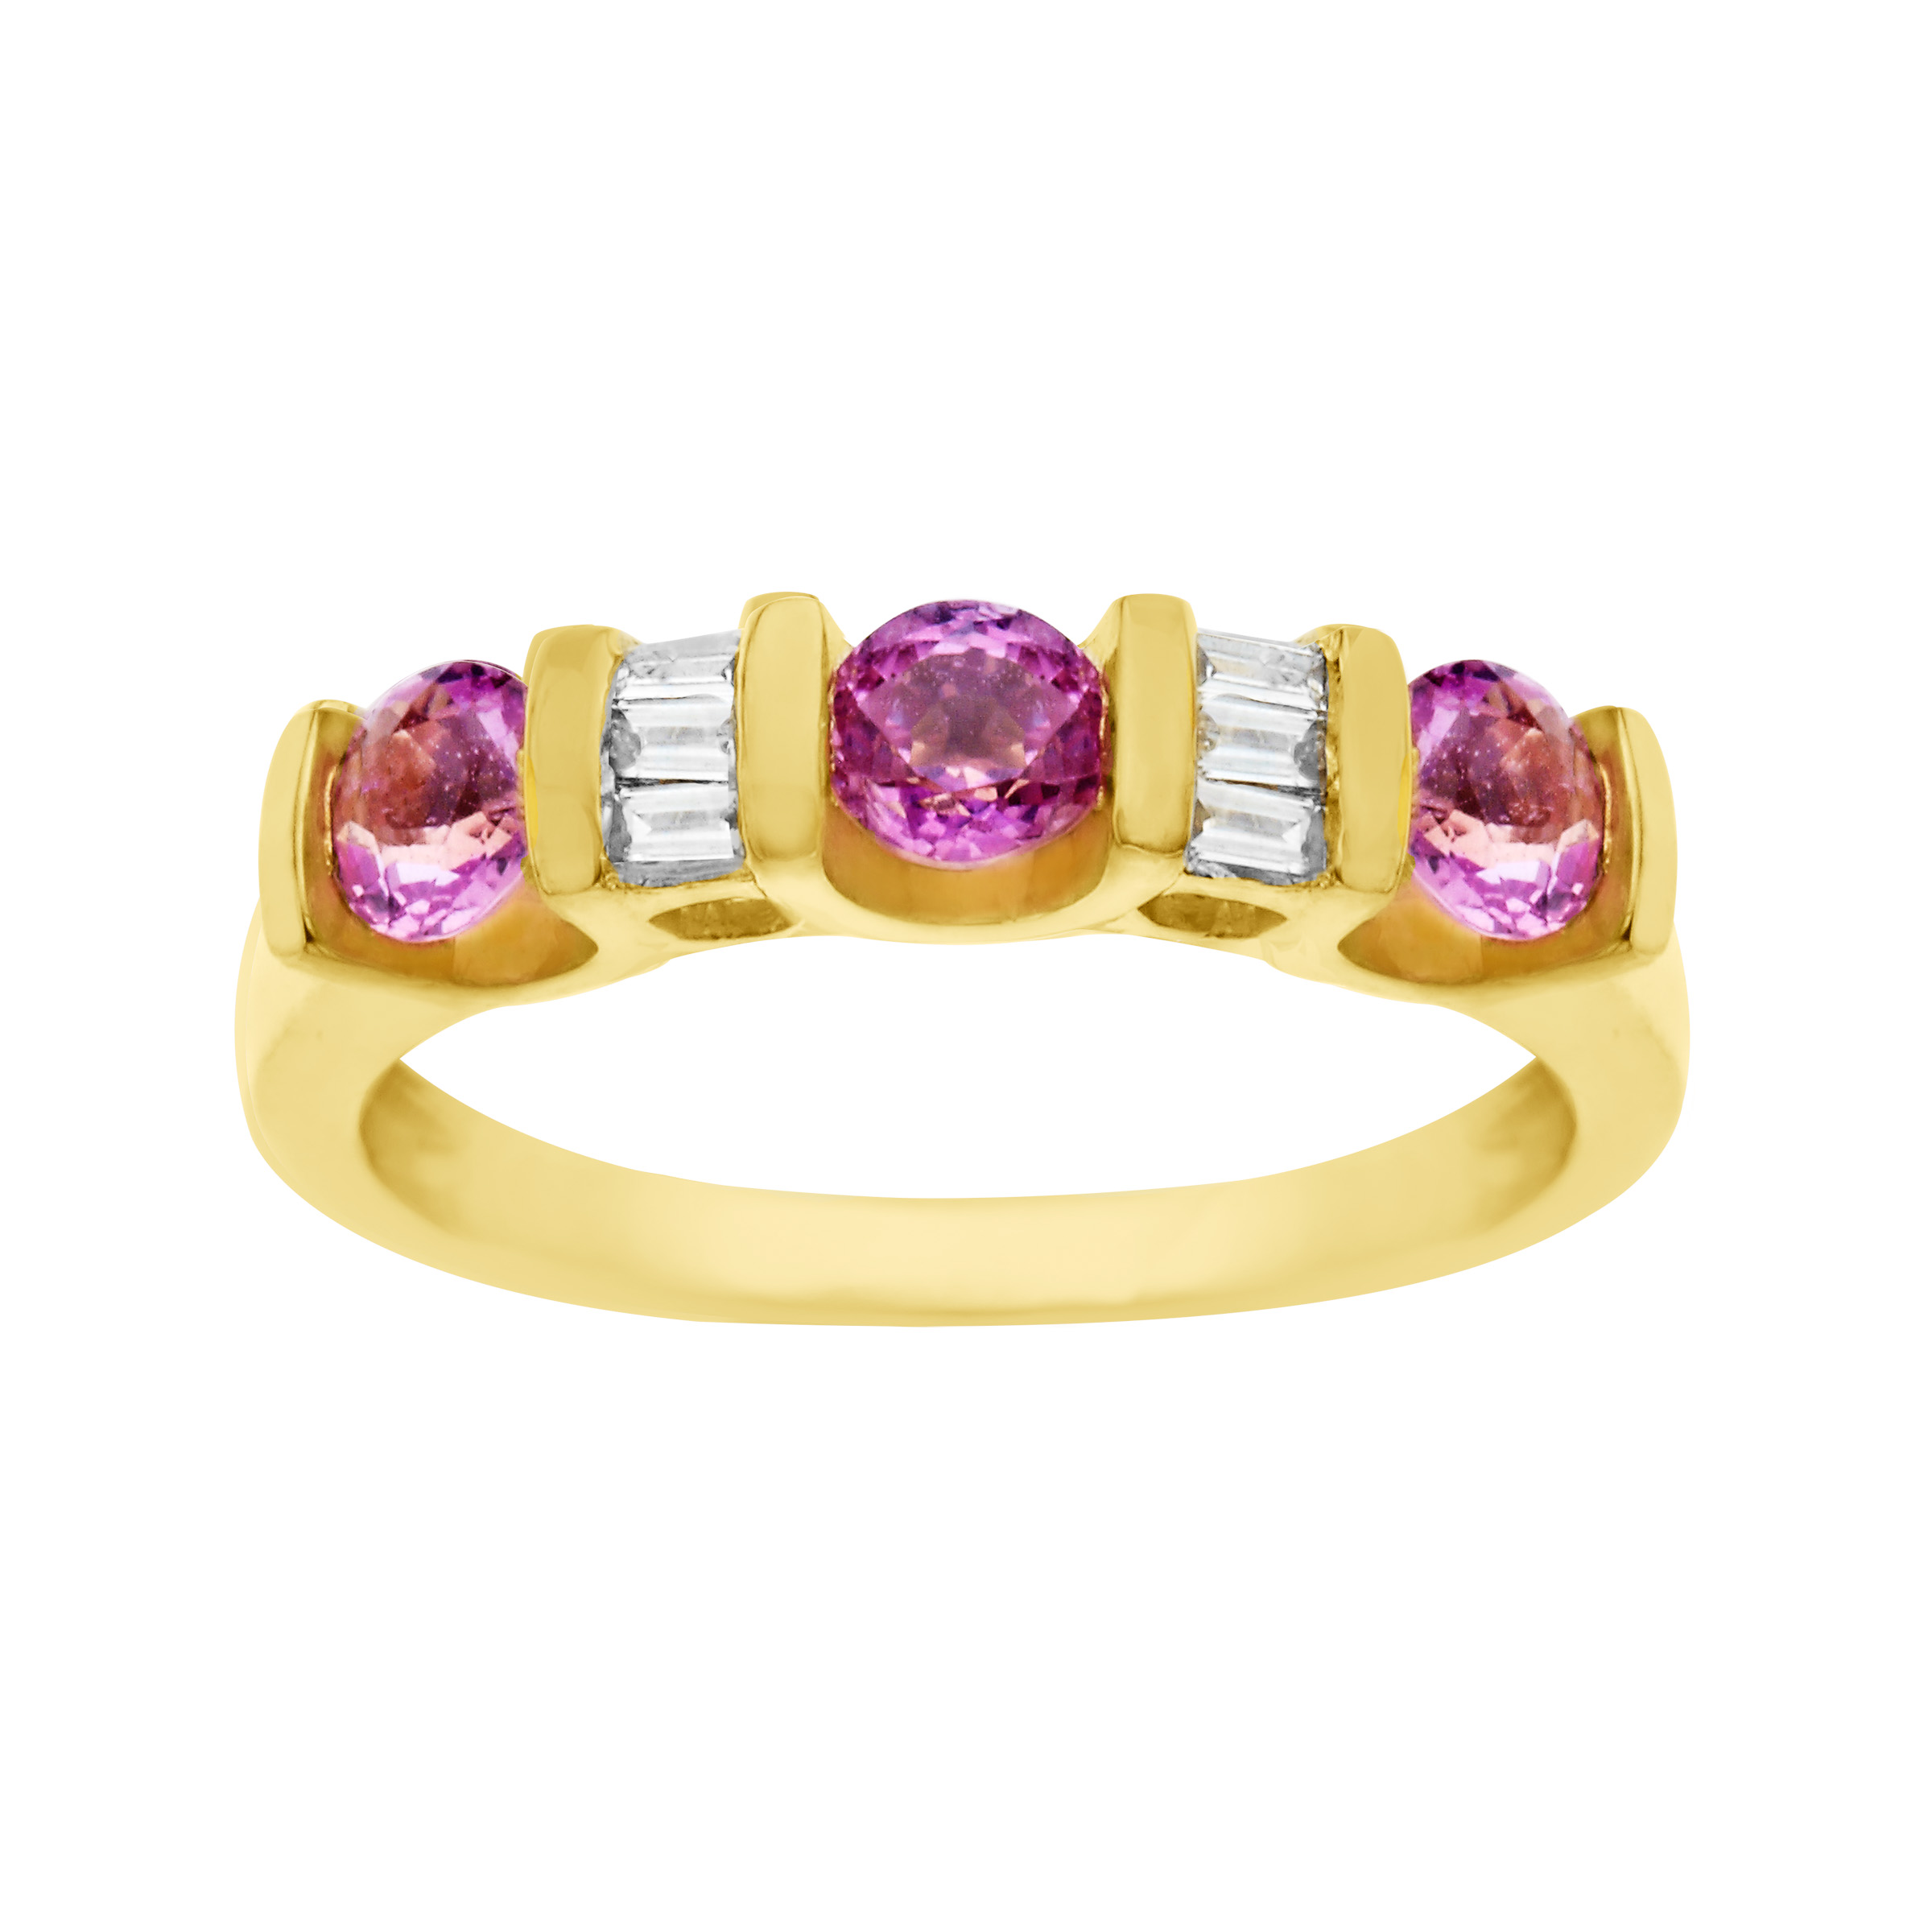 1 ct Pink Sapphire & 1 8 ct Diamond Ring in 14kt Gold by Richline Group